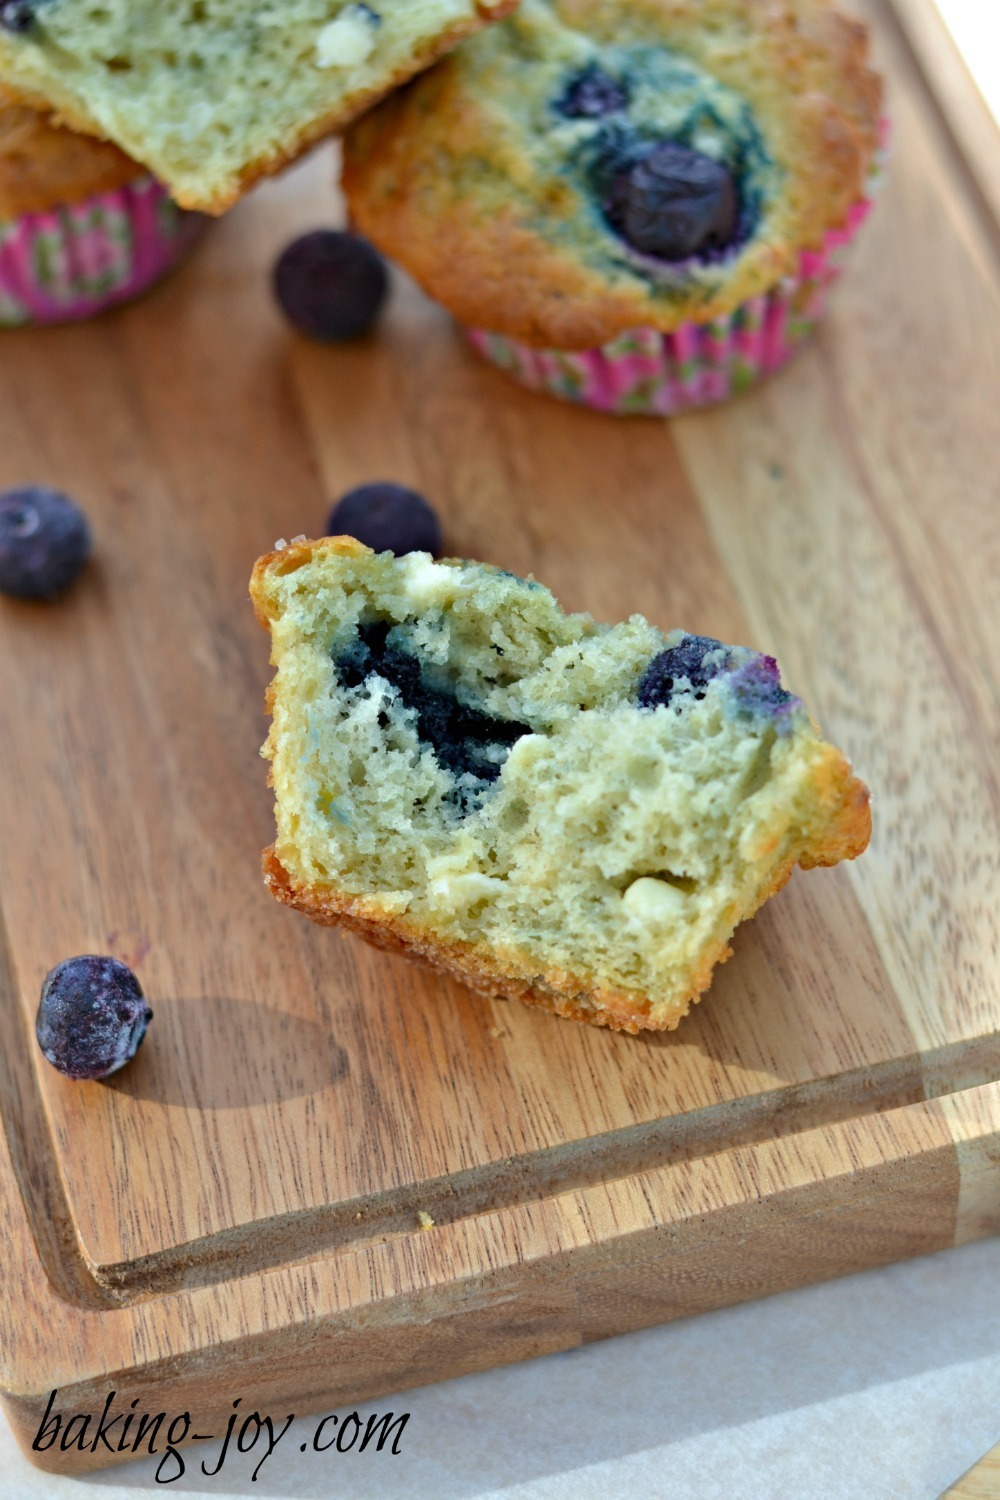 Lemon, White Chocolate and Blueberry Muffins